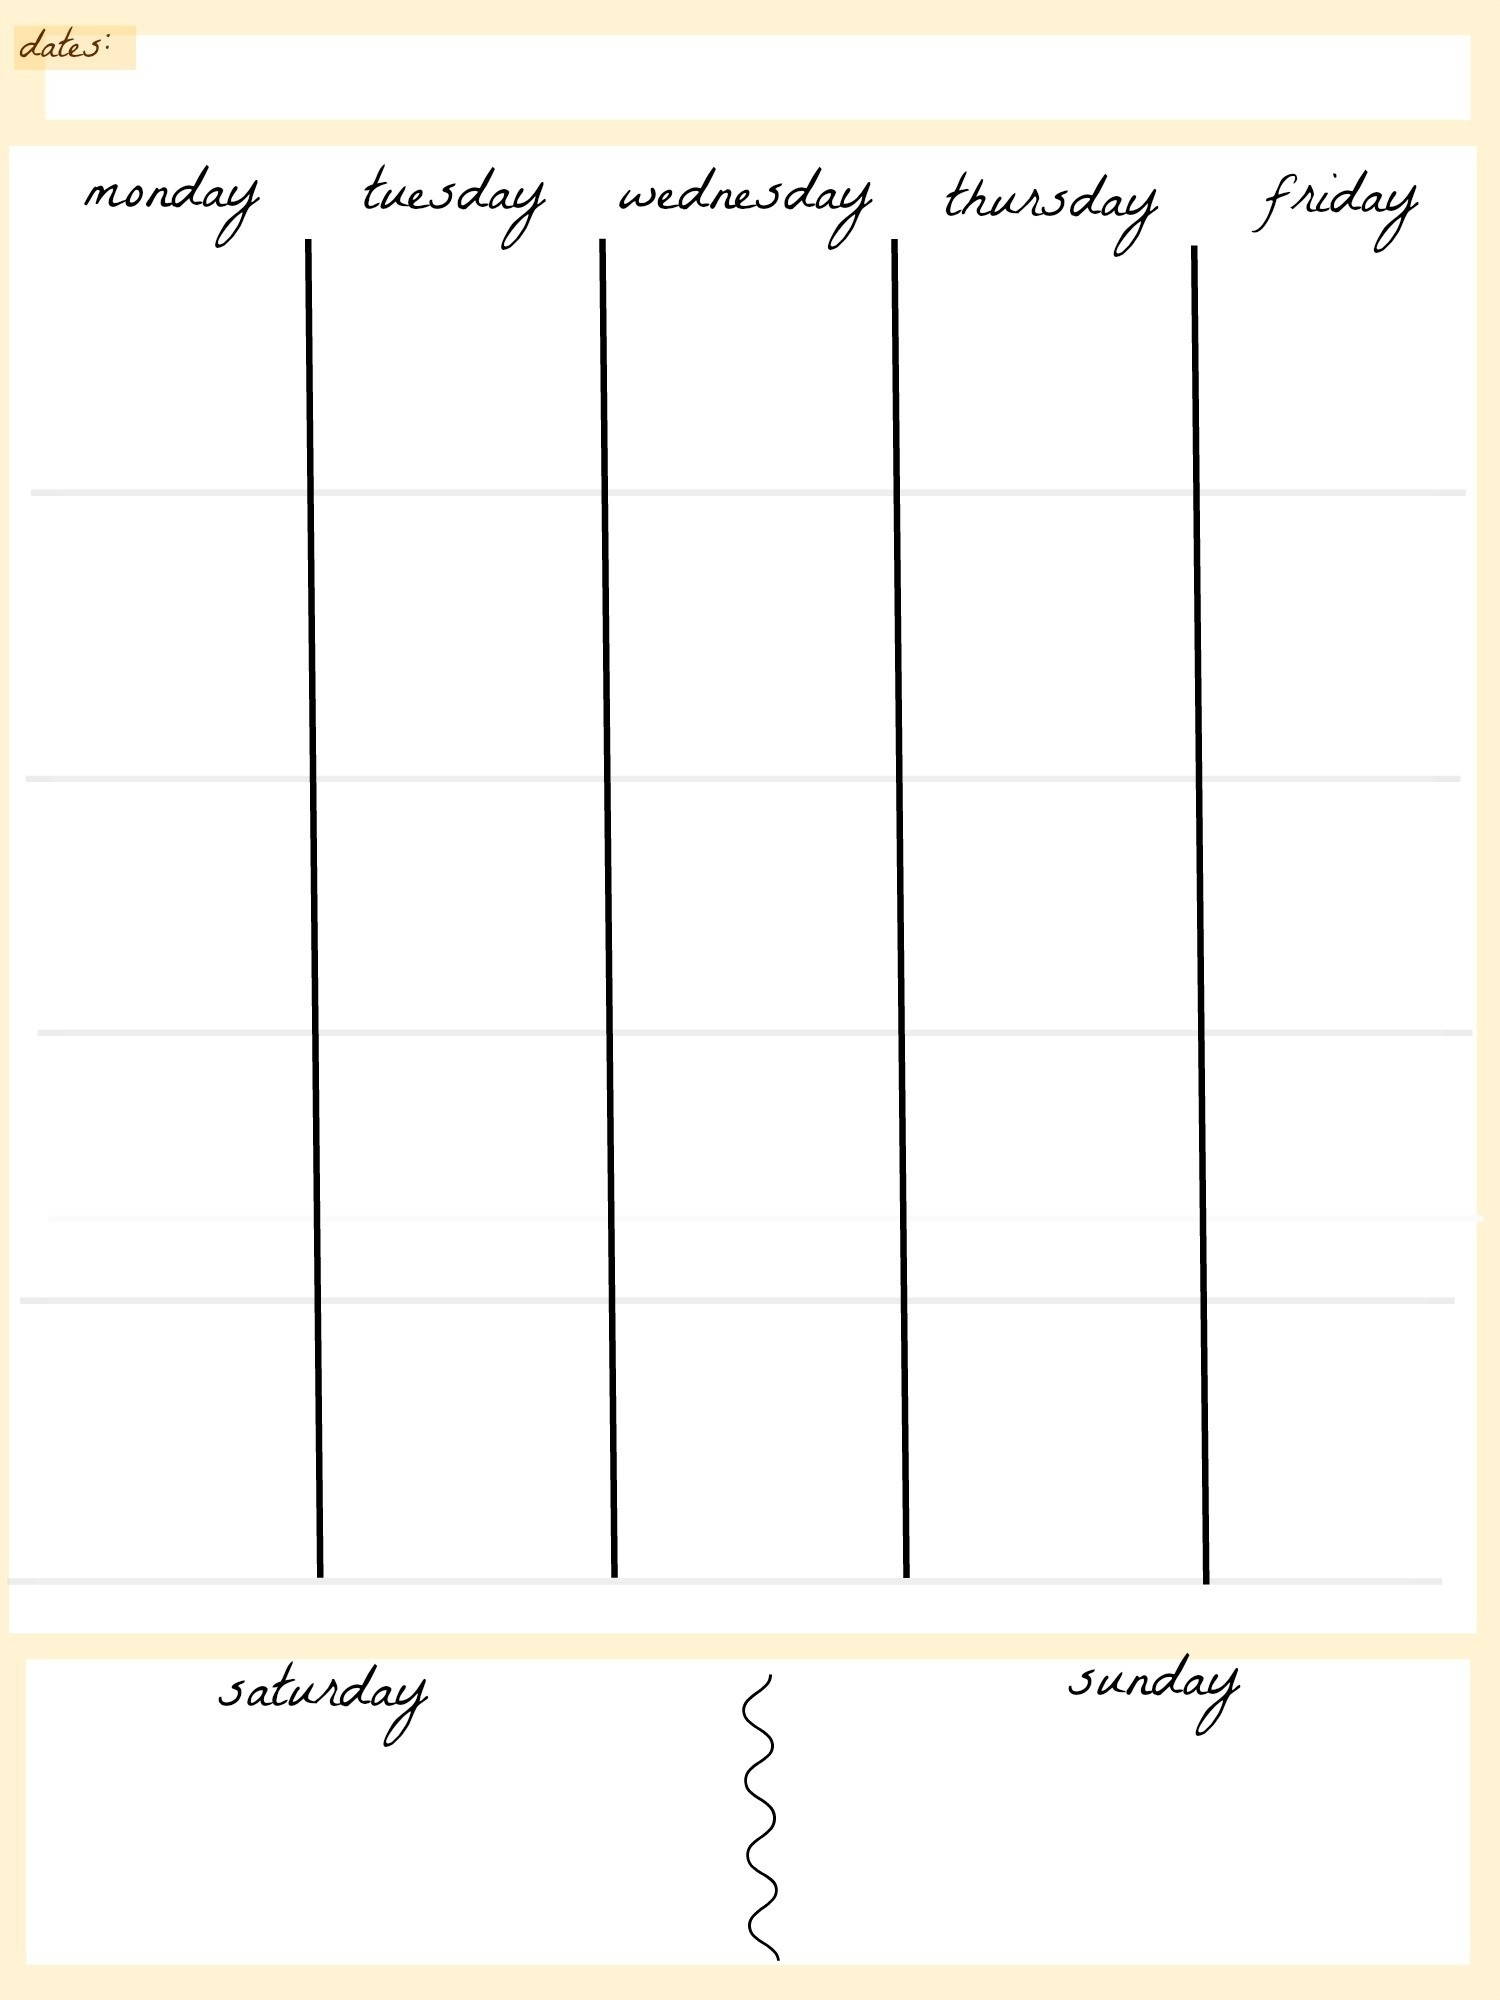 Blank Calendar Template 5 Day Week Weekly Calendar 5 Day Travel Cal1_5 Week Blank Calendar Template